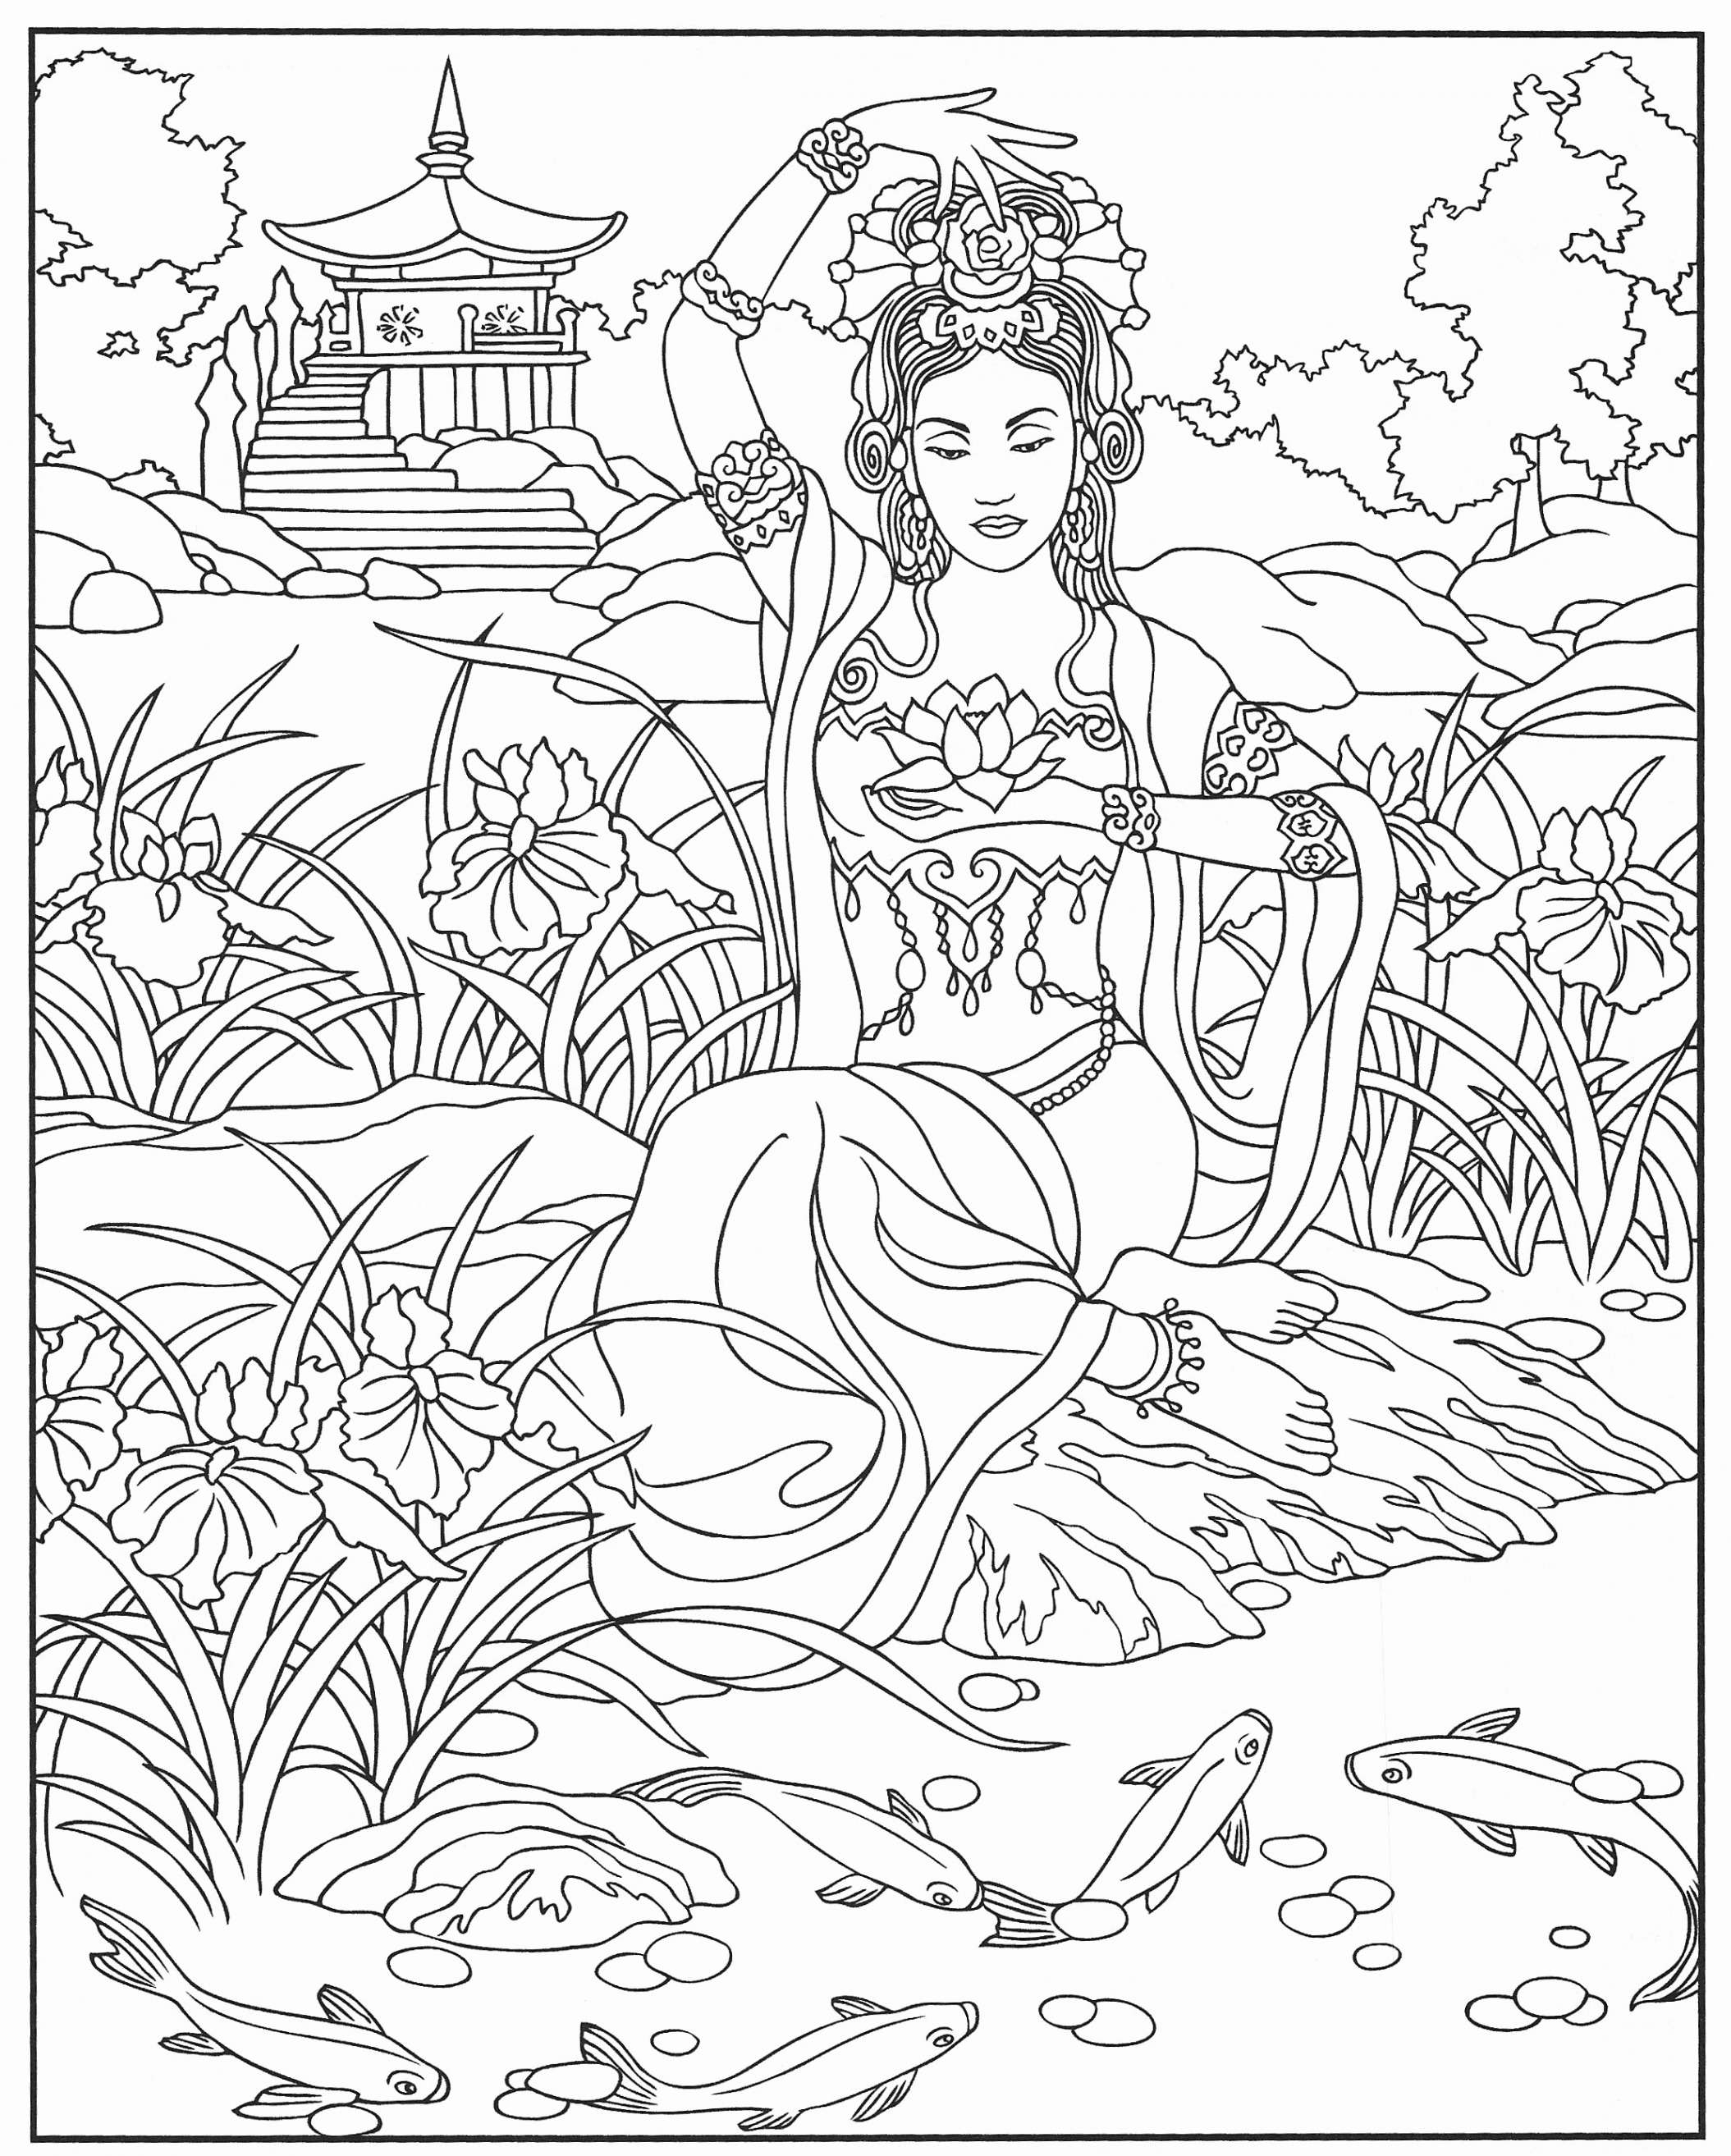 Superman Coloring Pages  to Print 18o - Save it to your computer